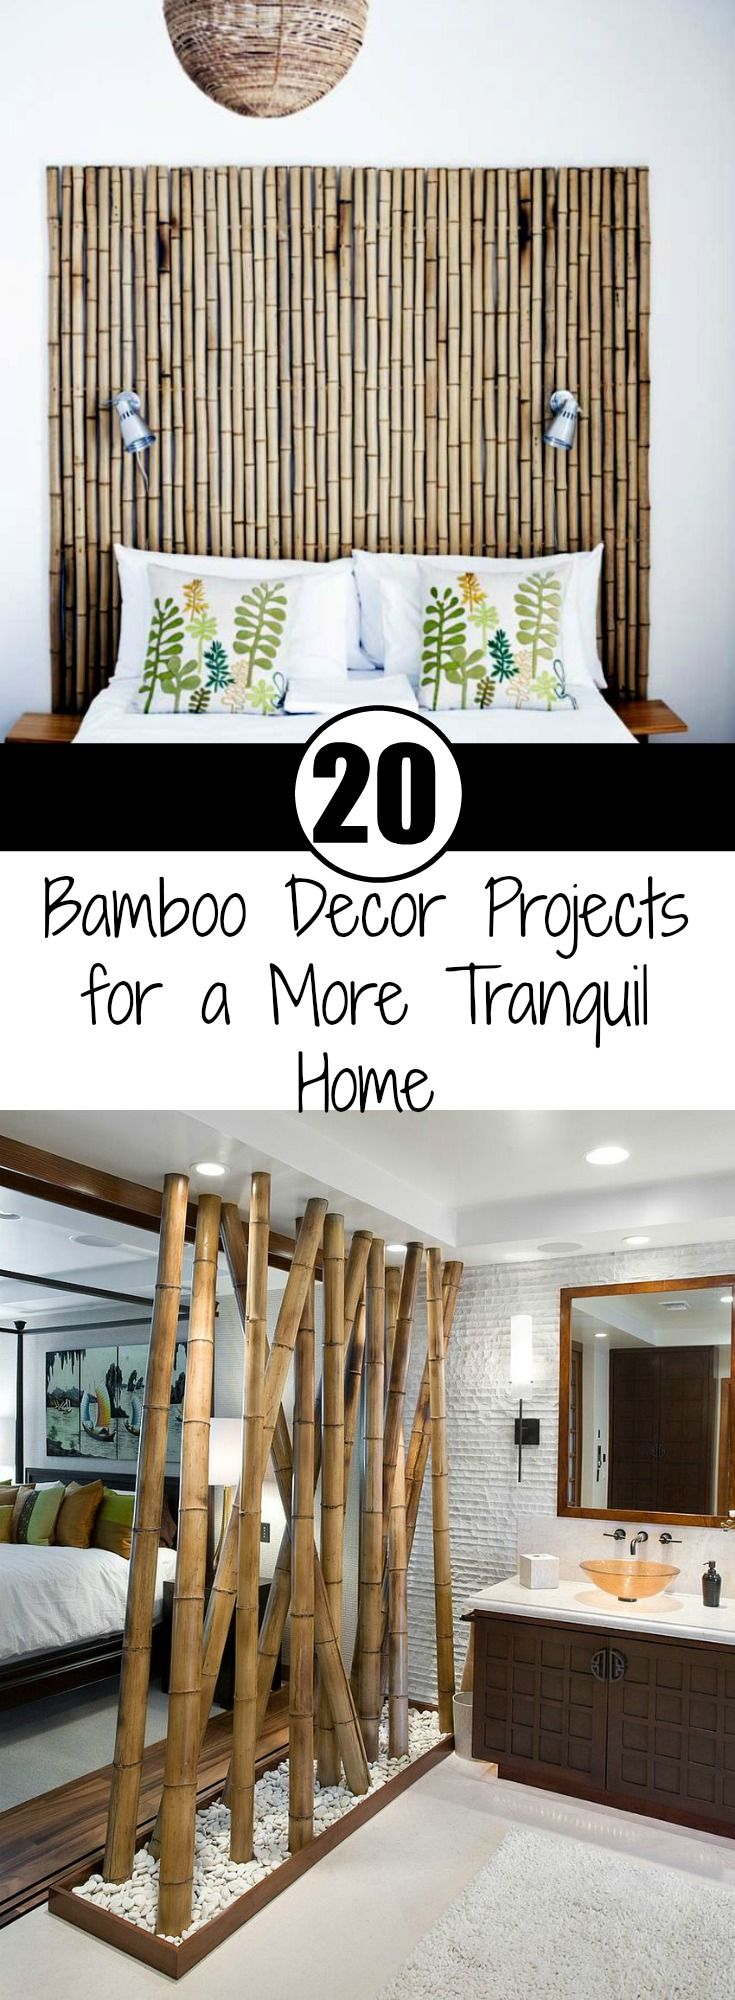 Best 25+ Bamboo Decoration Ideas On Pinterest